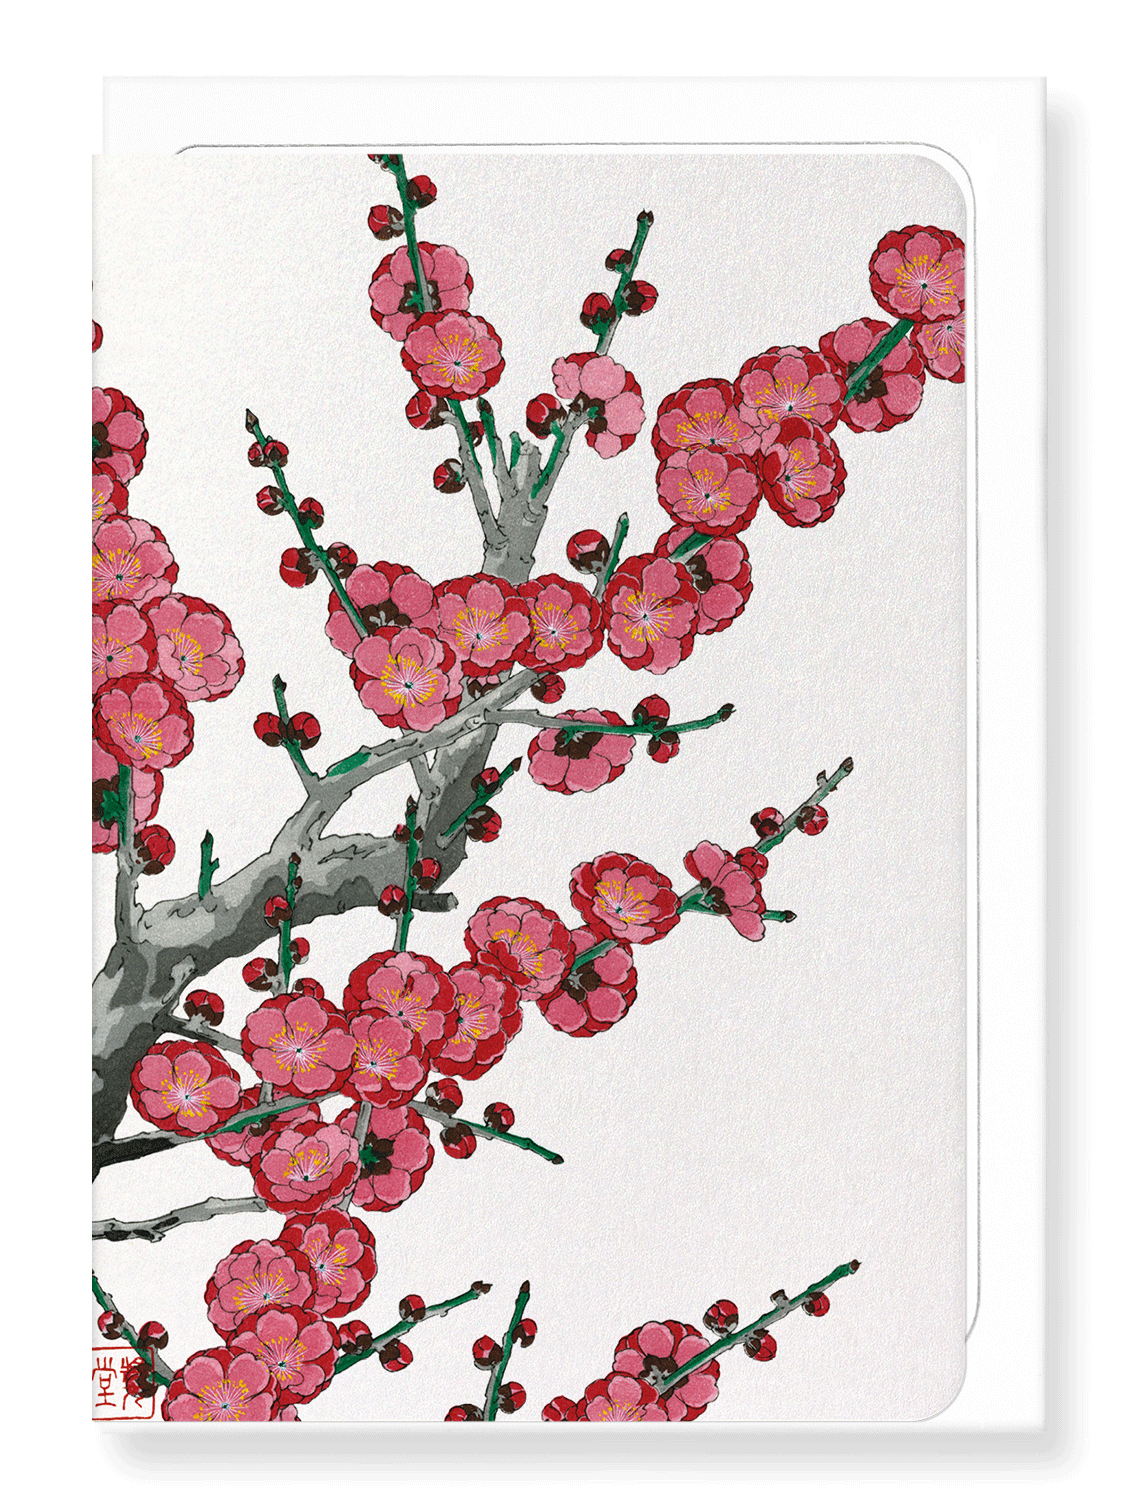 Ezen Designs - Red plum blossom - Greeting Card - Front